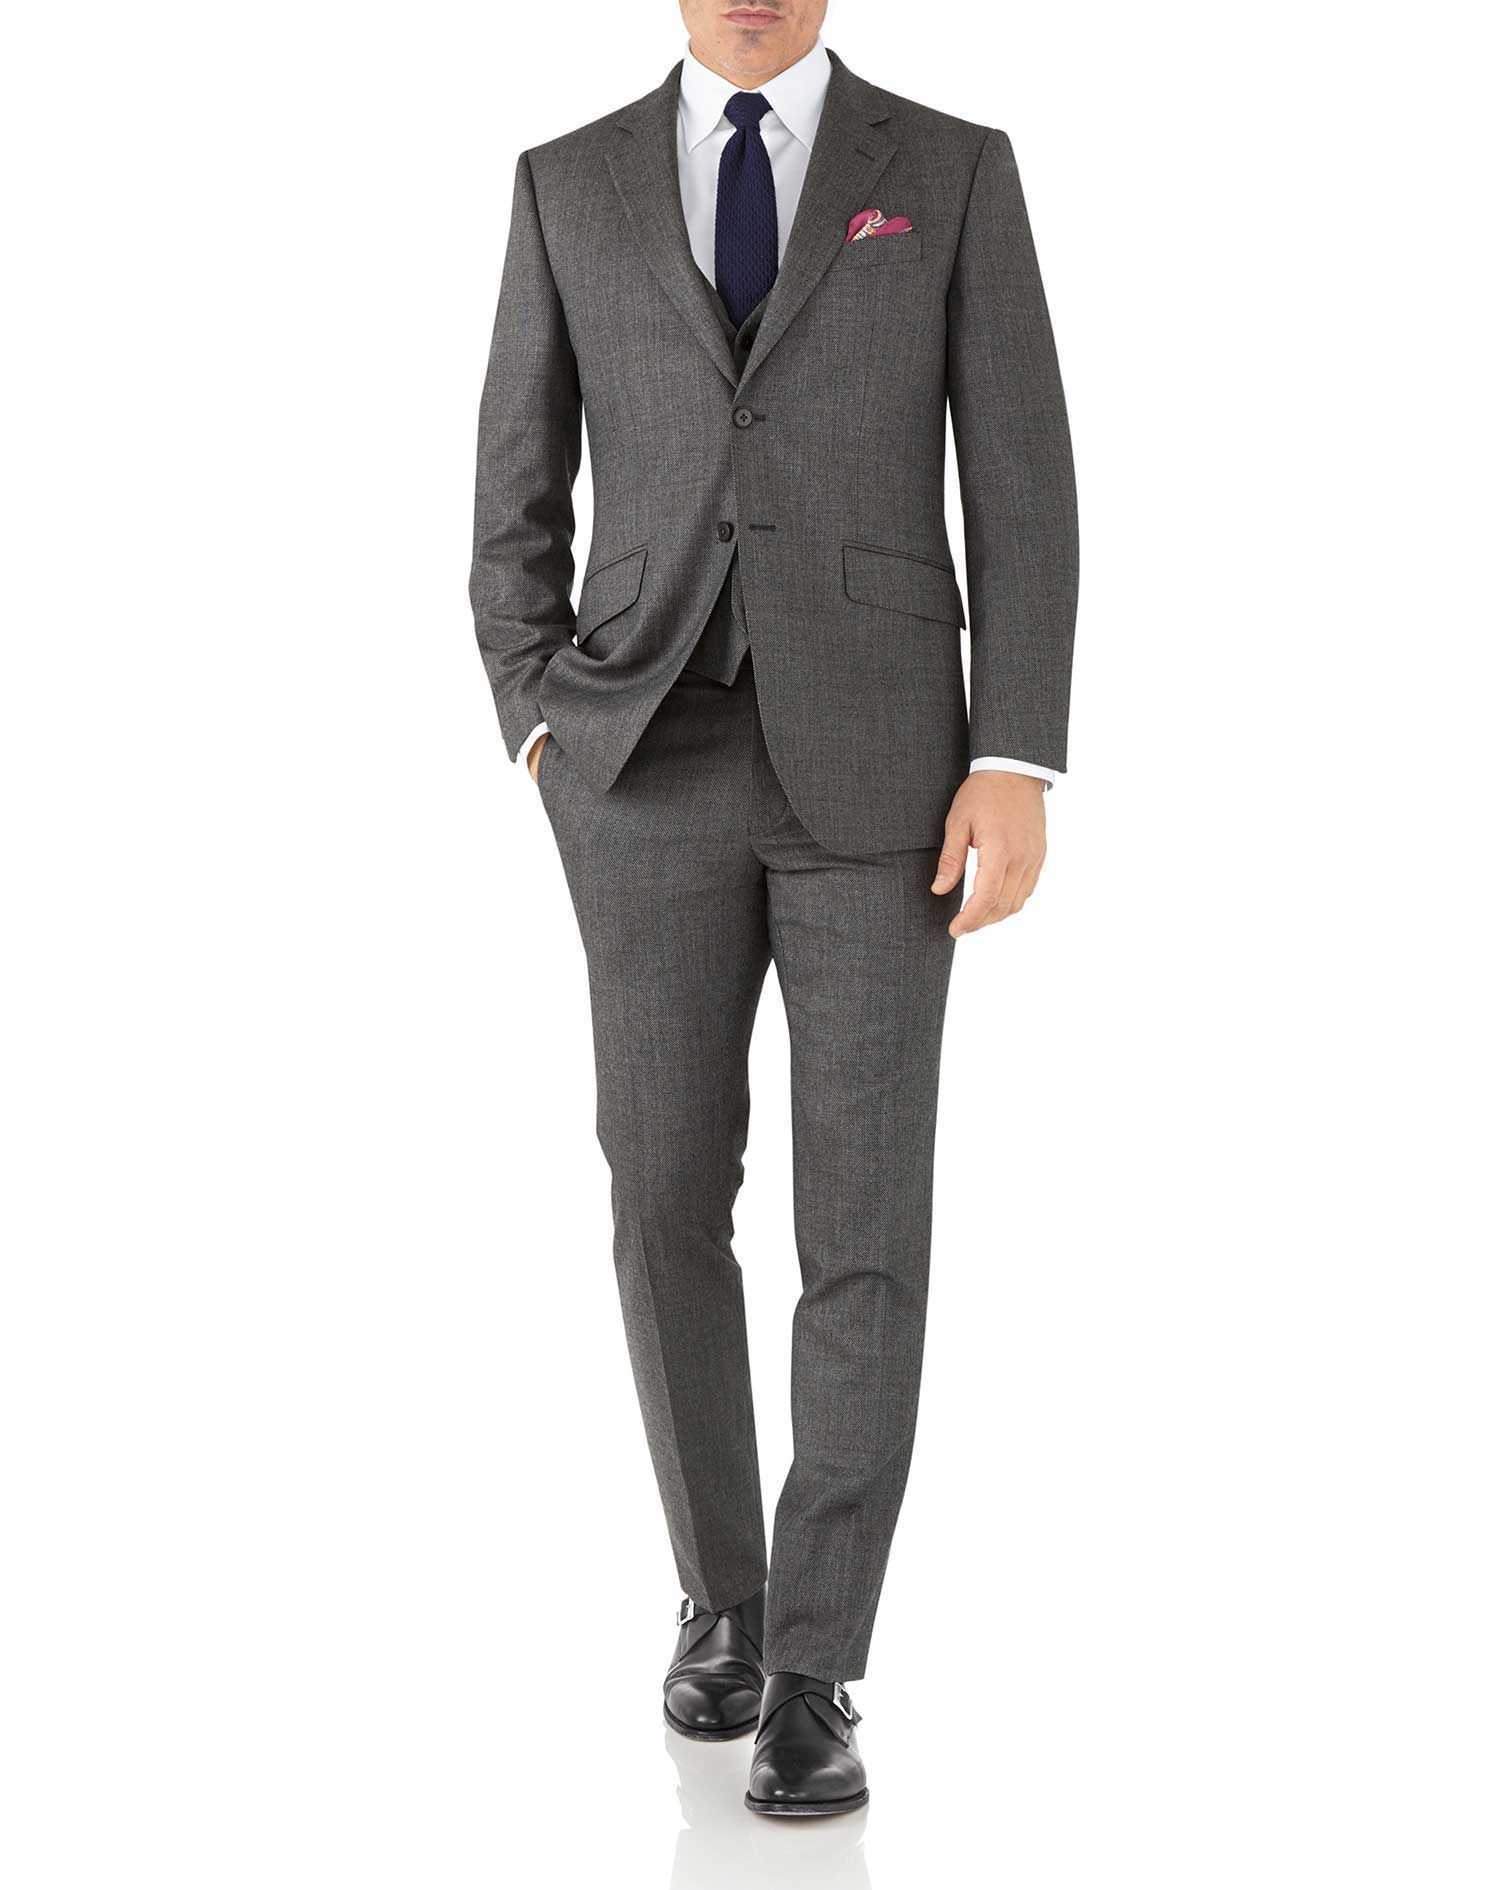 Silver slim fit flannel business suit jacket